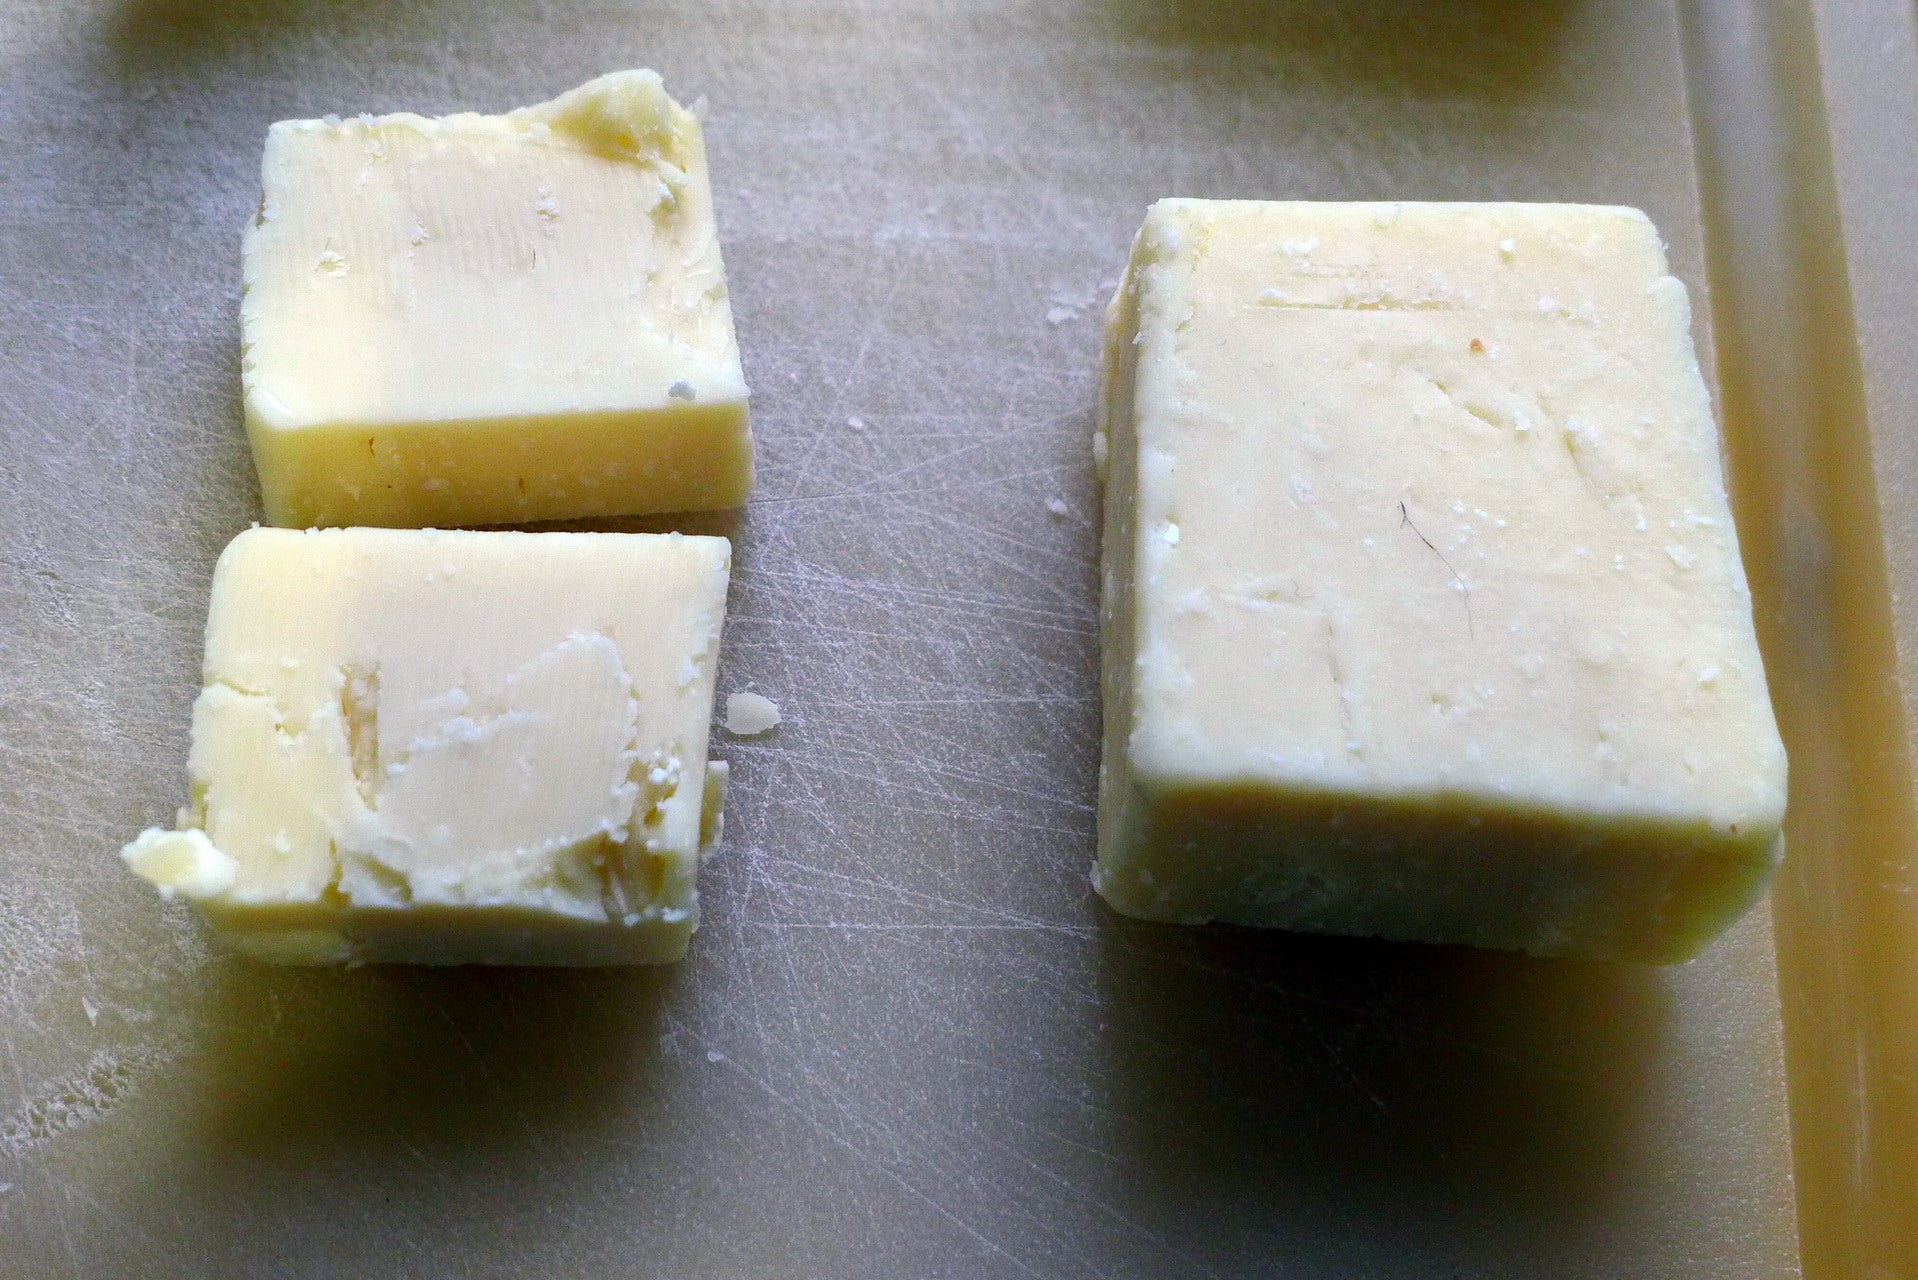 Two blocks of Cheddar. One previously frozen, one fresh. We could barely tell the difference